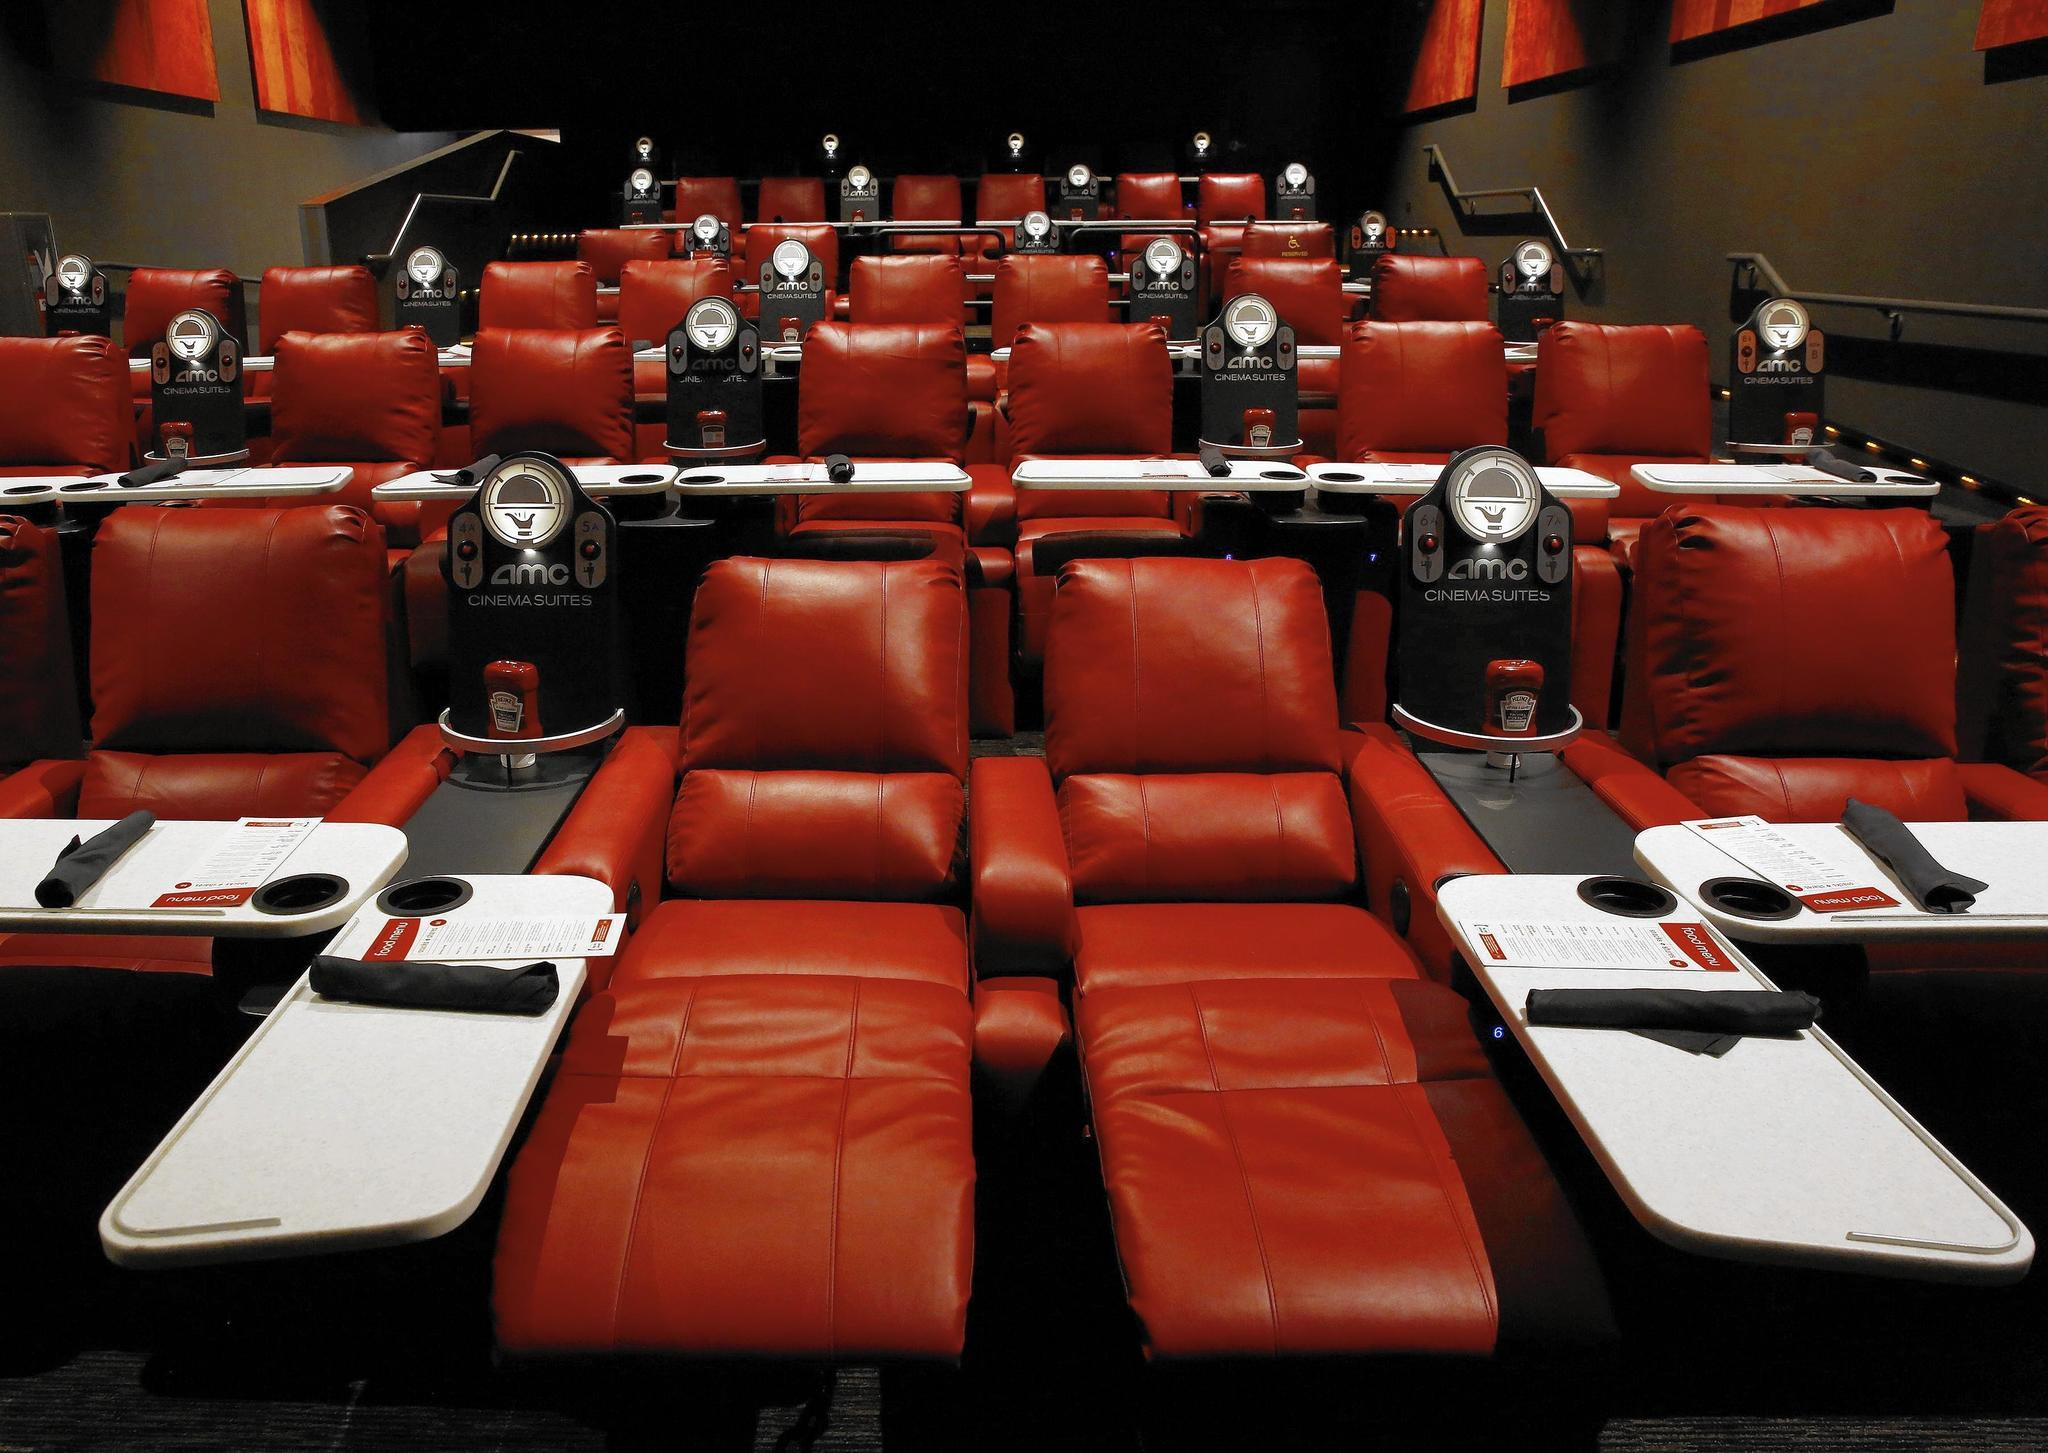 combo at em seats chair tickets an in upsells theater people amc theaters unlimited recliner relax money movie toy powered movieseats concessions all upsell